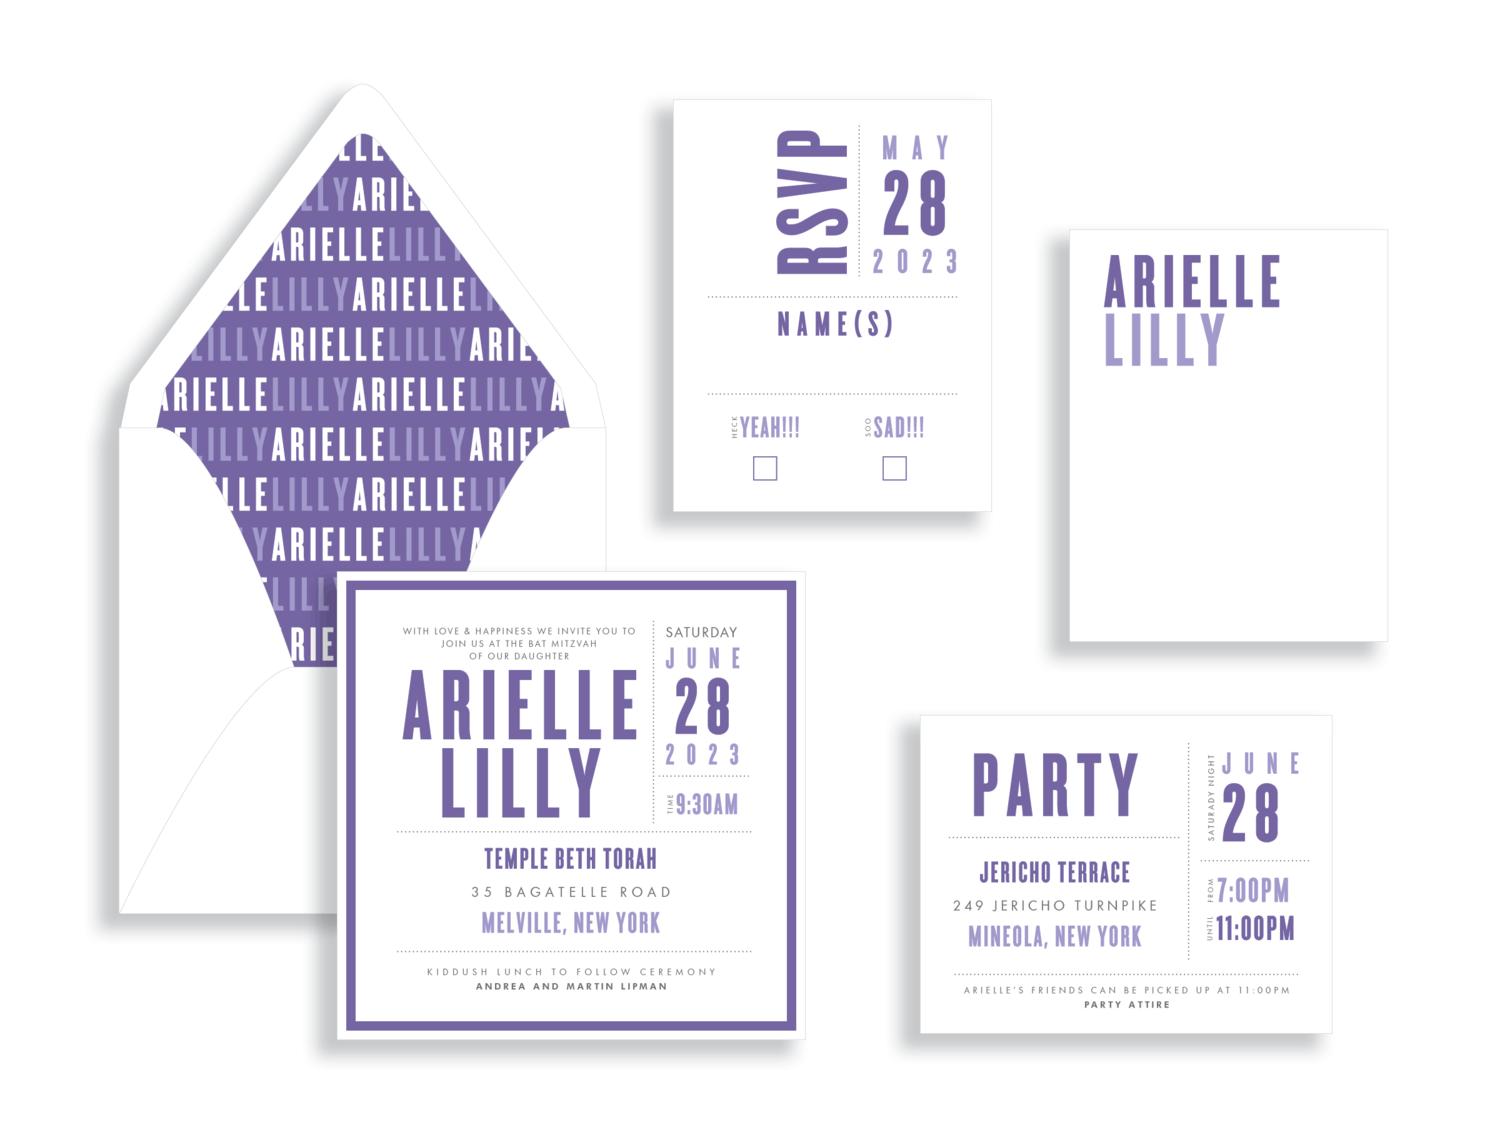 Arielle purple and white layered bat mitzvah invitation in the Washington DC Metro area from Staccato.  Customize colors and layers!